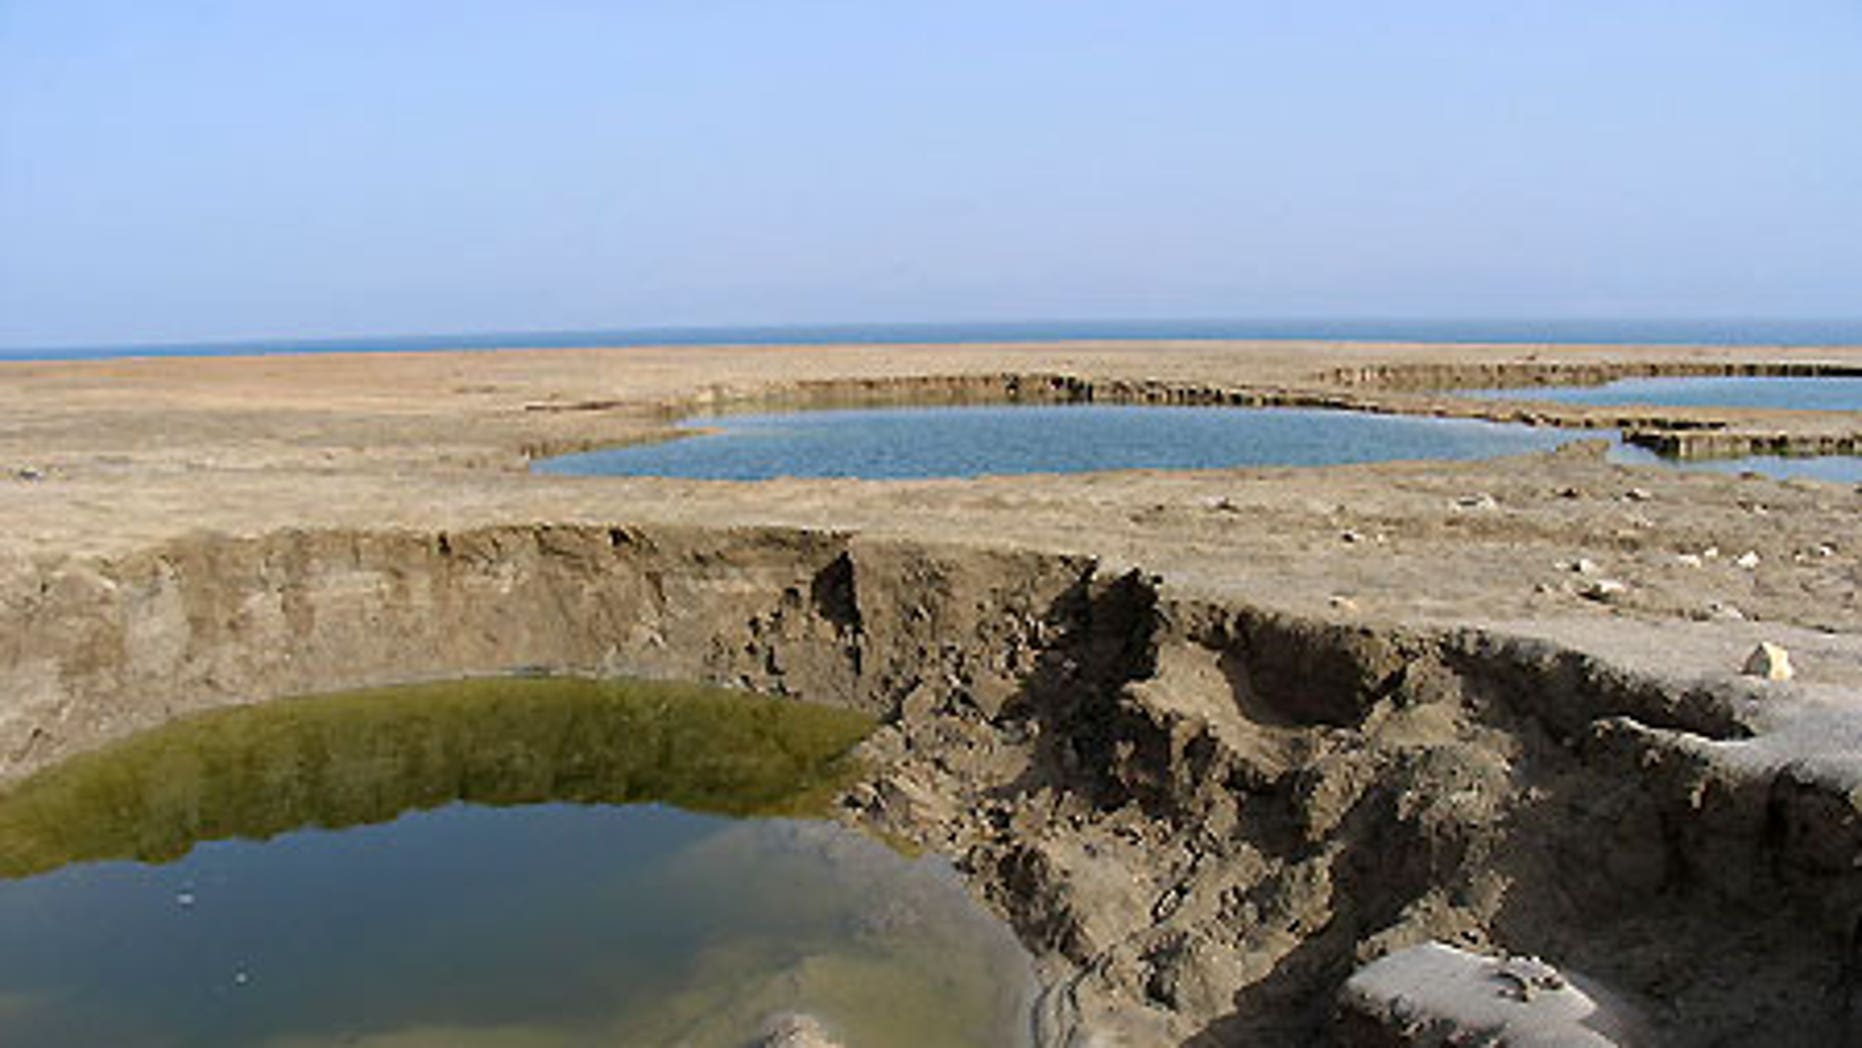 Sinkholes at the Dead Sea's Mineral Beach, in the West Bank, in February 2005.